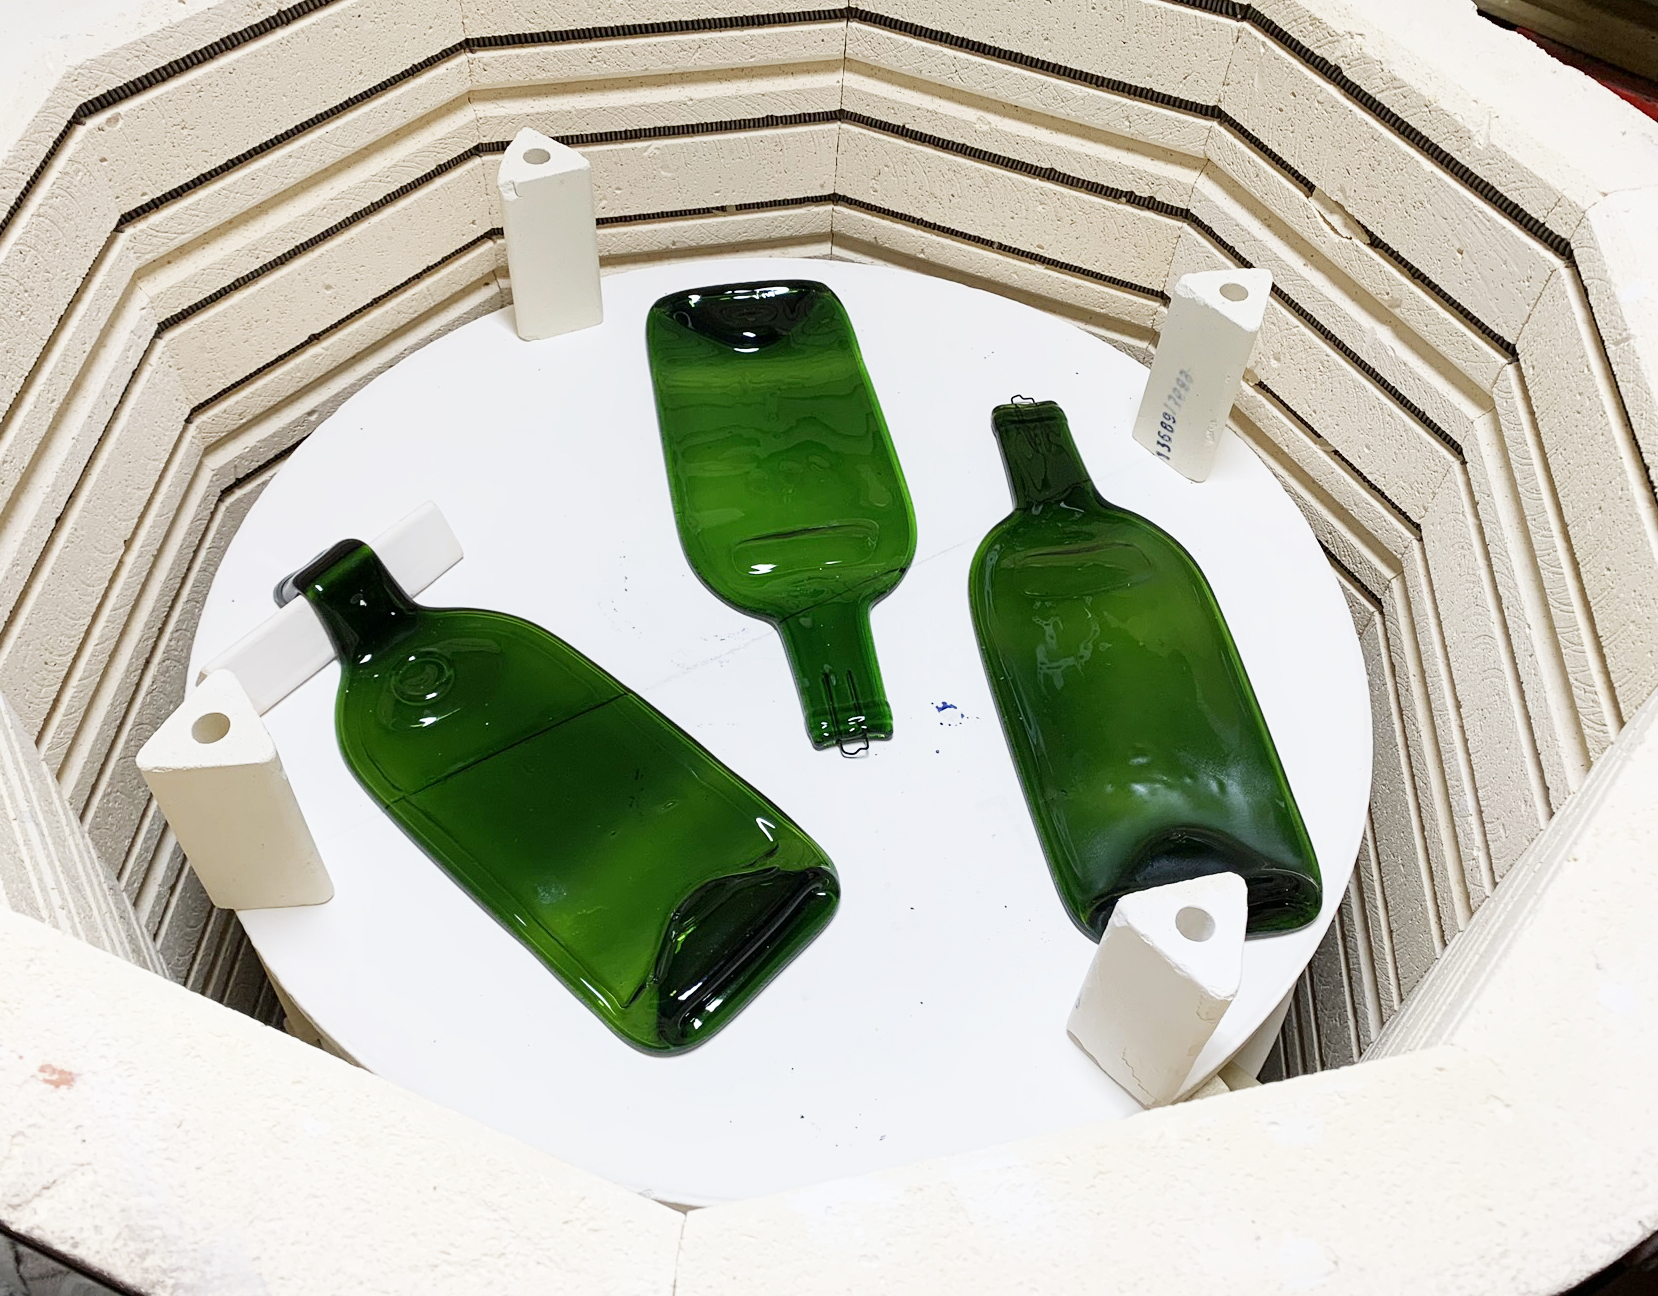 Gorgeous Green melted wine bottles for serving your favorite snack!